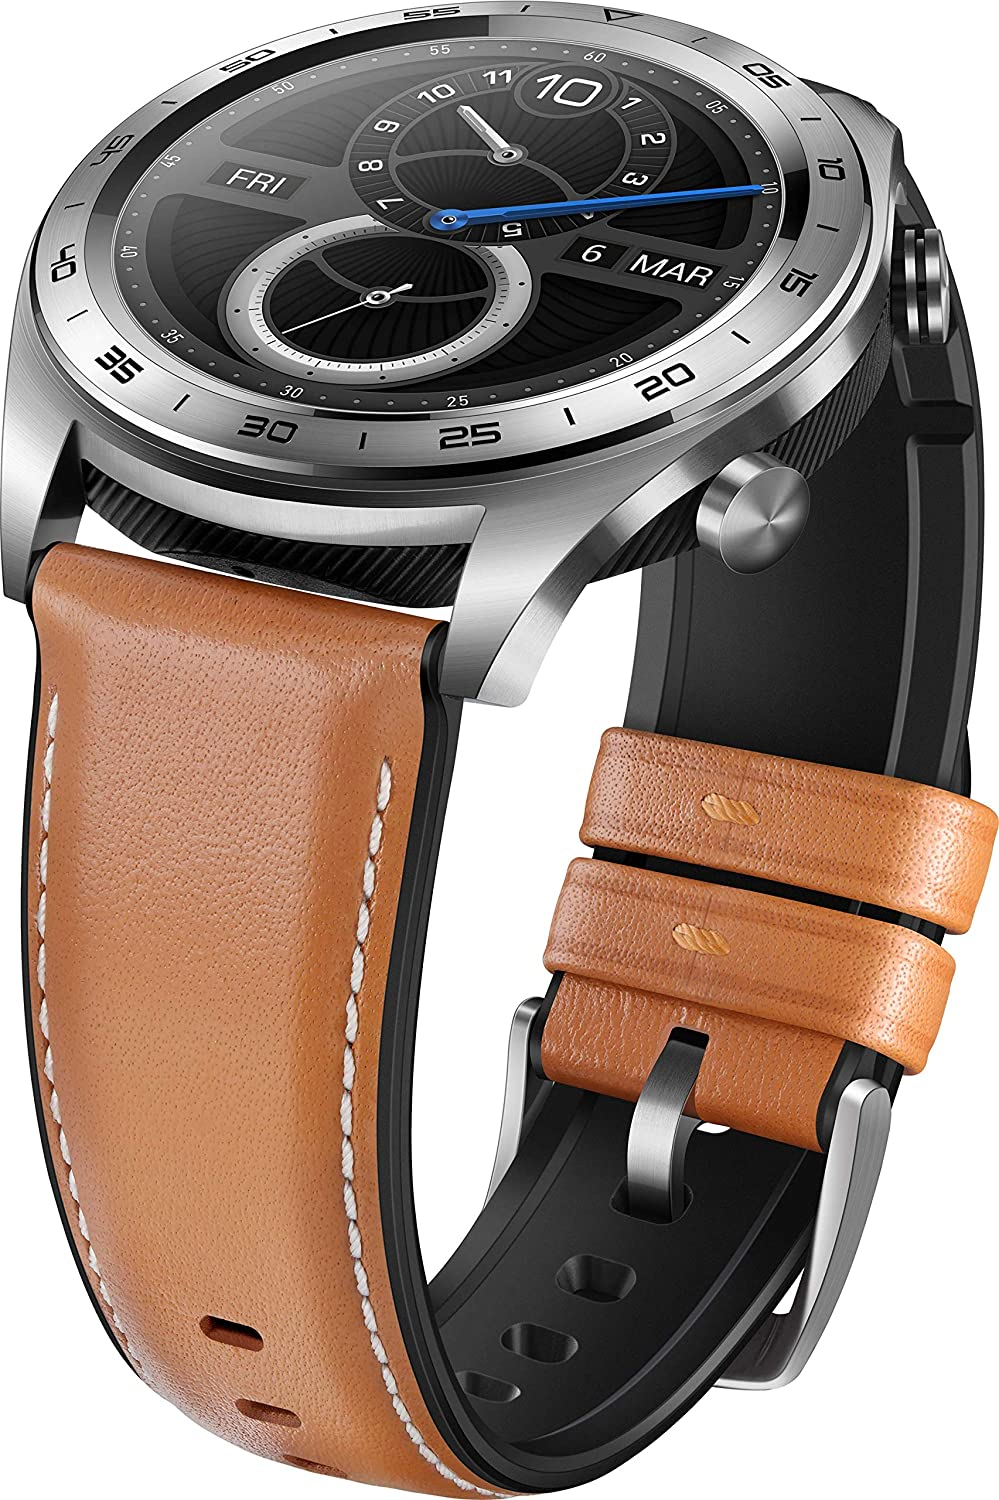 HONOR Watch 55023302 - Reloj diseño clásico con Pantalla AMOLED de ...